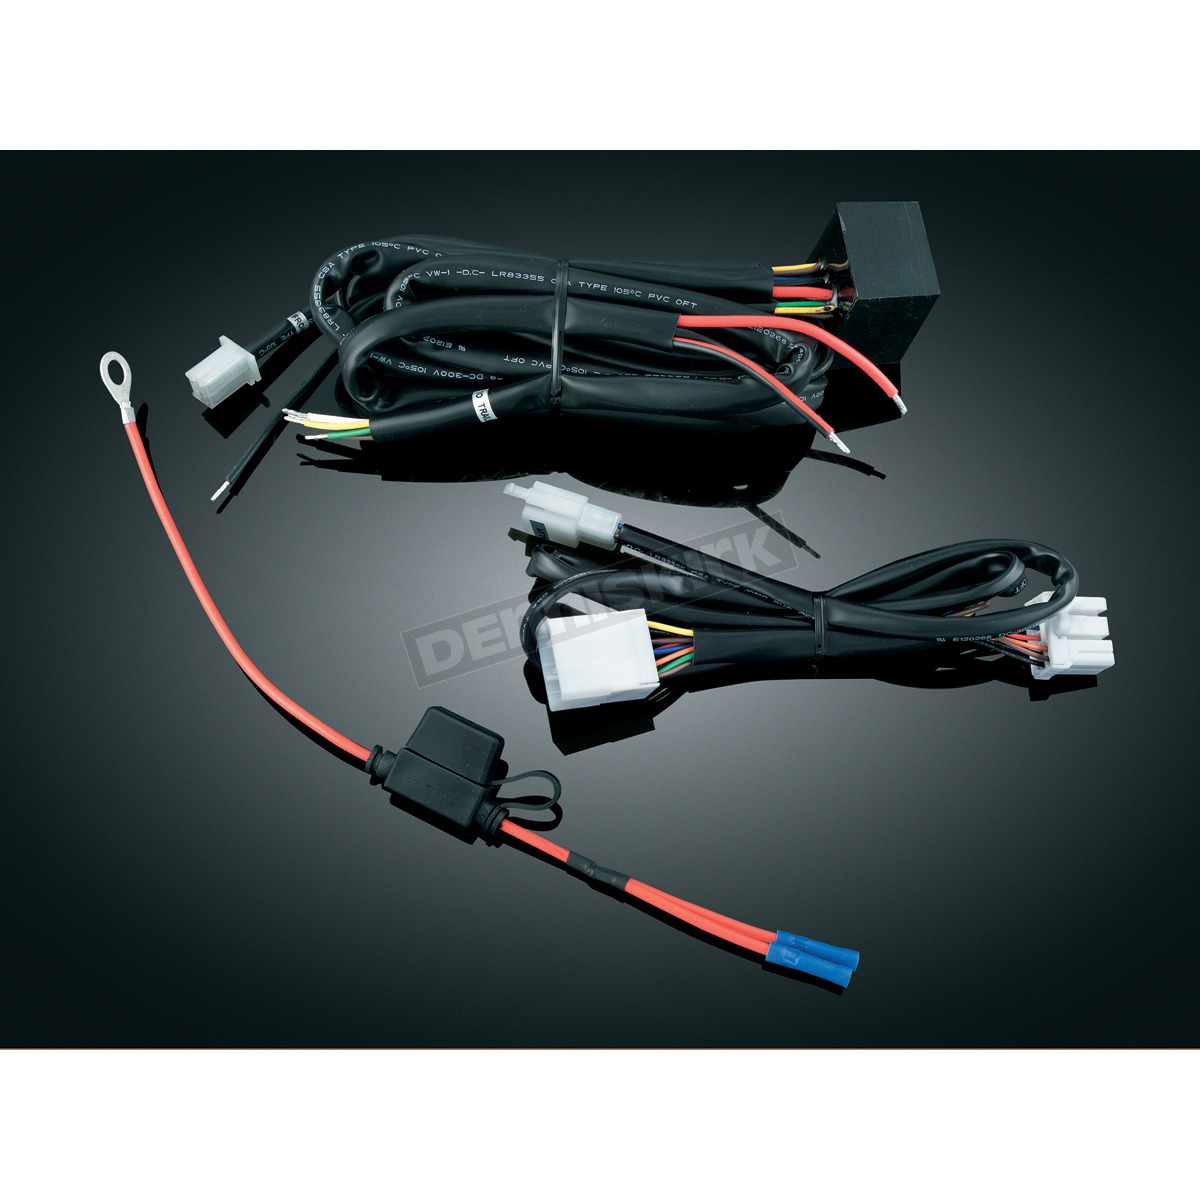 Kuryakyn Plug and Play Trailer Wiring and Relay Harness - 7672 Harley-Davidson  Motorcycle | Dennis KirkDennis Kirk